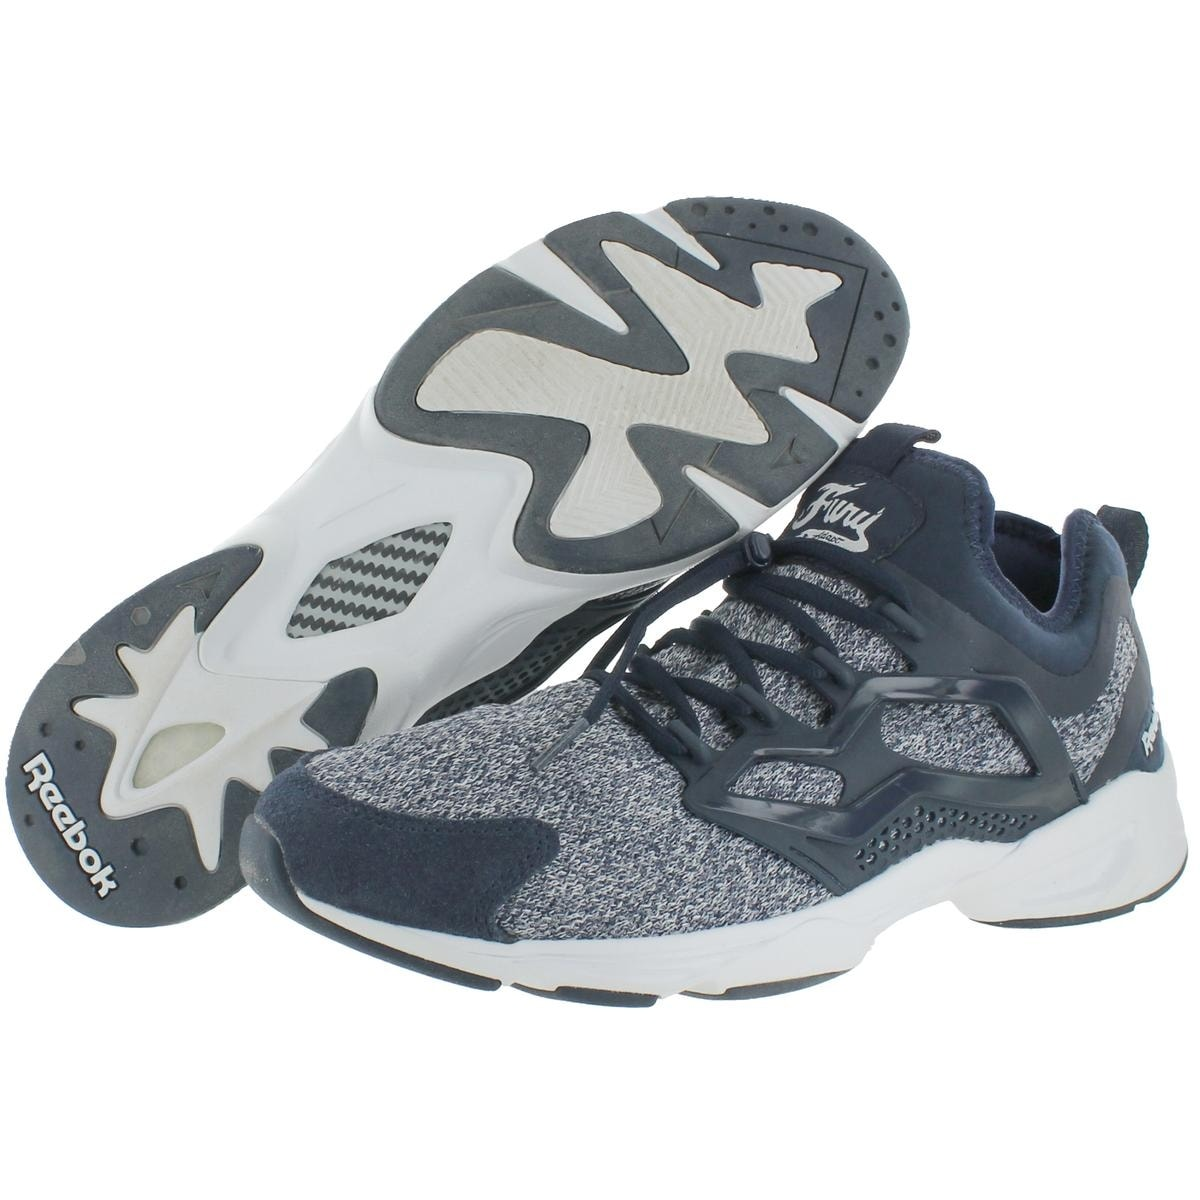 af90e2f4287 Shop Reebok Mens Fury Adapt Running Shoes Hexalite Ortholite - 11 Medium  (D) - Free Shipping On Orders Over  45 - Overstock - 22311180